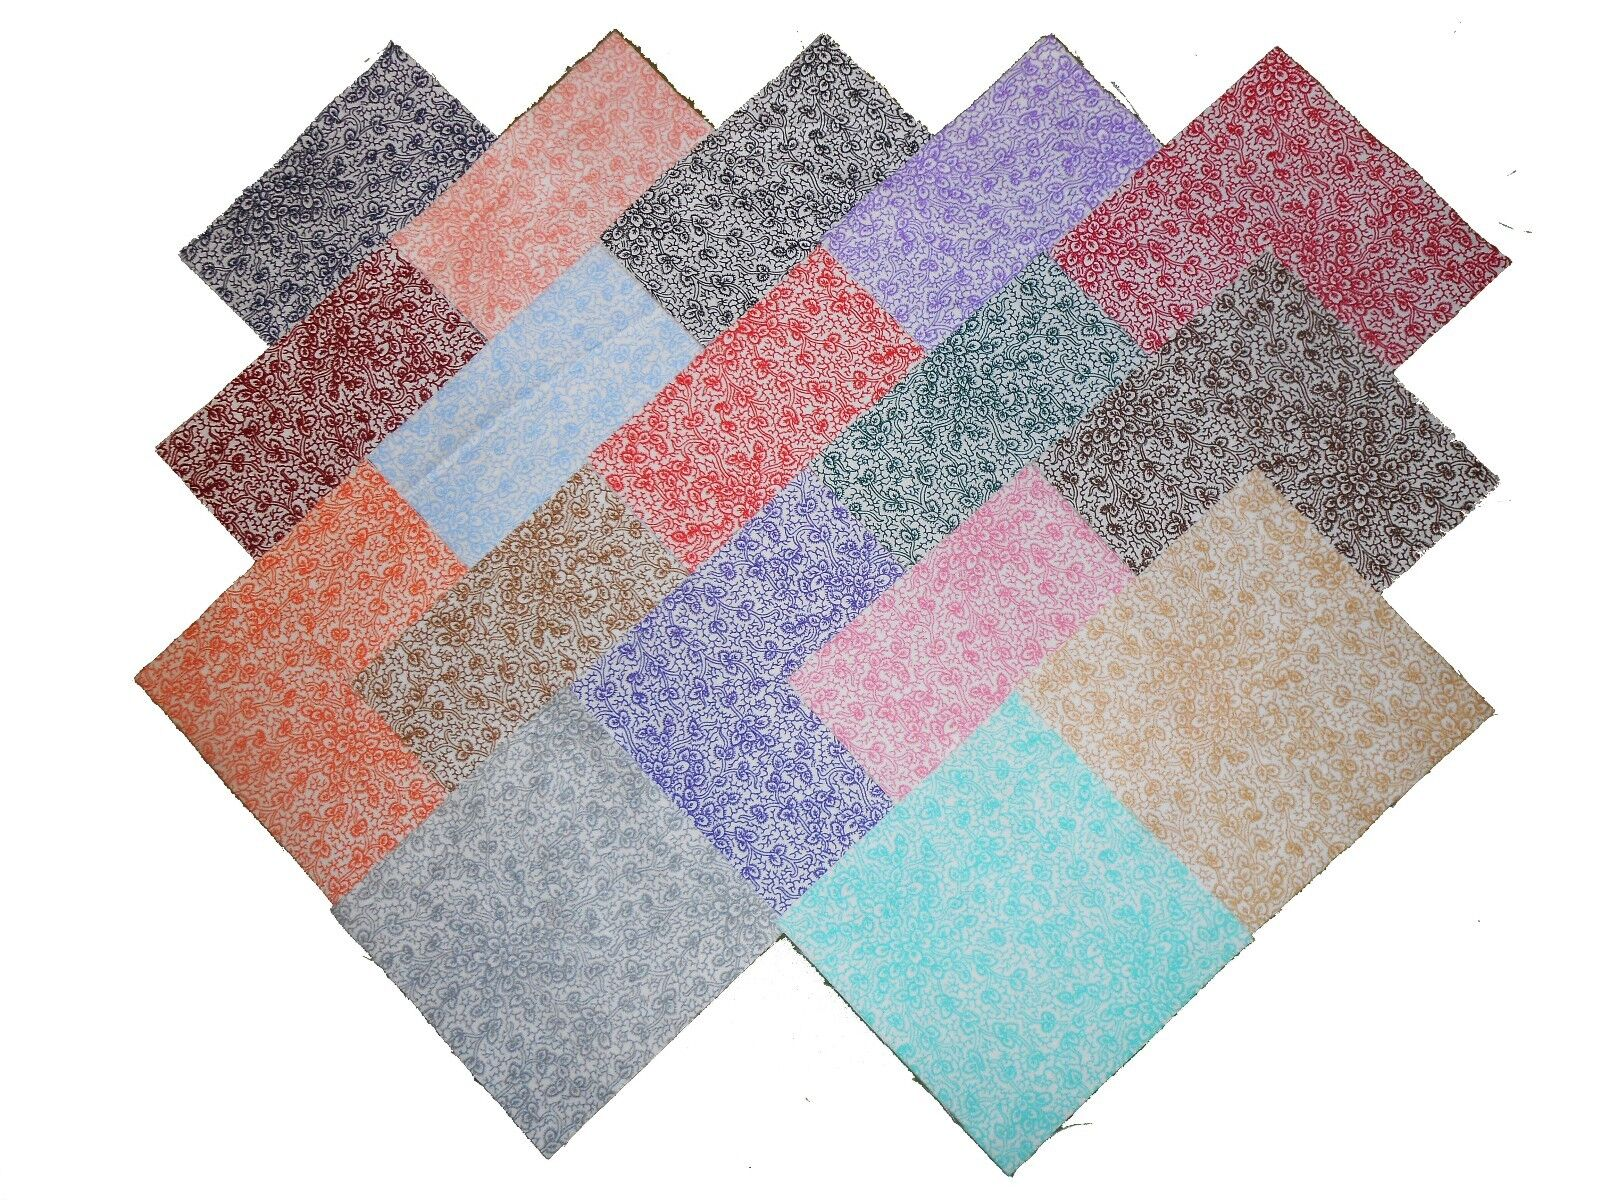 10 10X10 INCH Layer Cake World of Aqua Charm Pack-10 Different Patterns//Colors-1 of Each